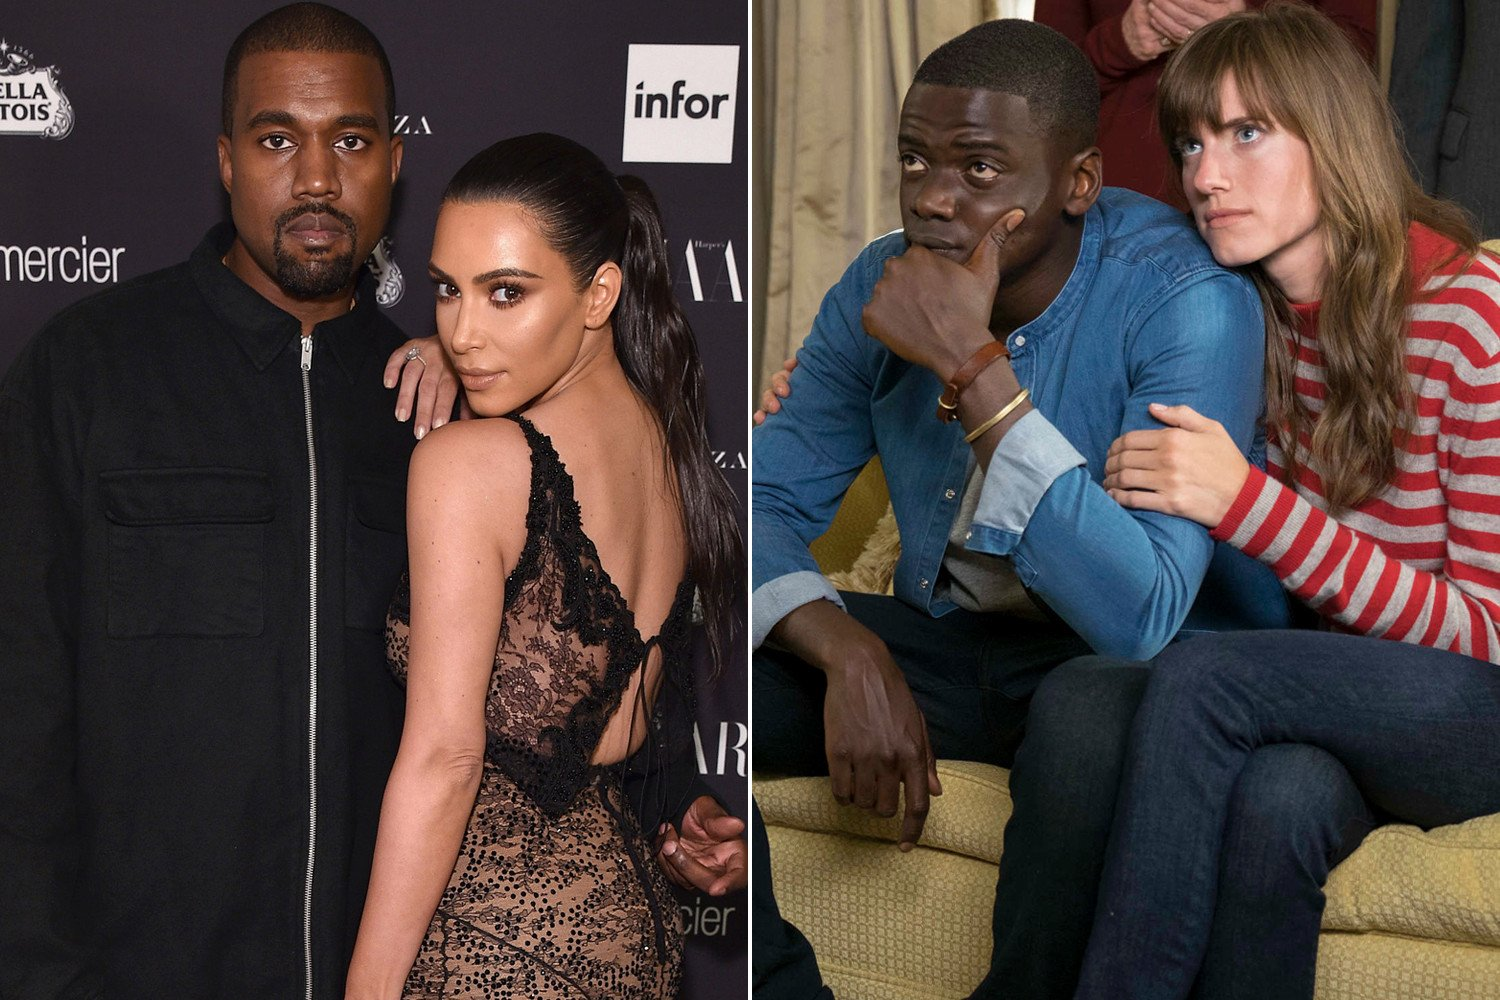 Kim slams comparisons to 'Get Out'